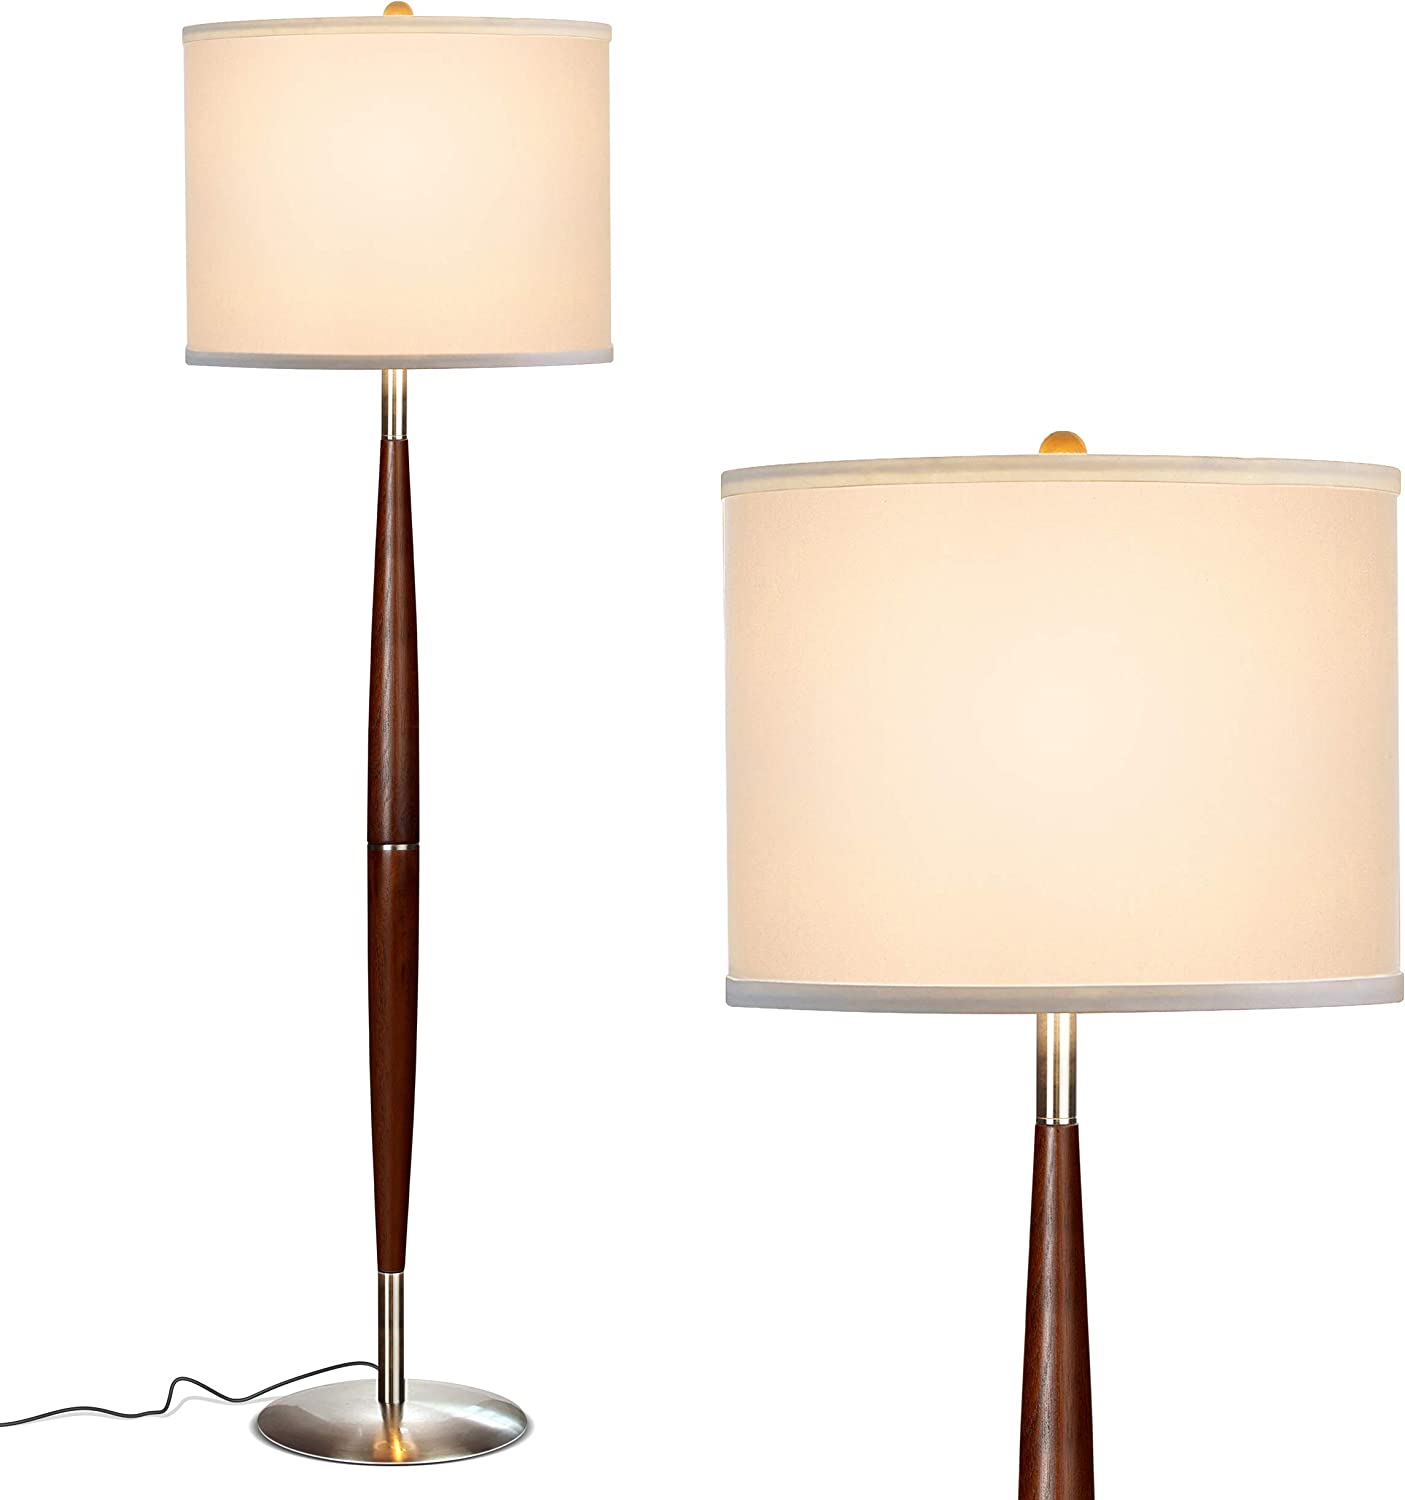 Brightech Lucas - Mid Century Spring Selling and selling new work Modern Floor Read Lamp Bedroom for